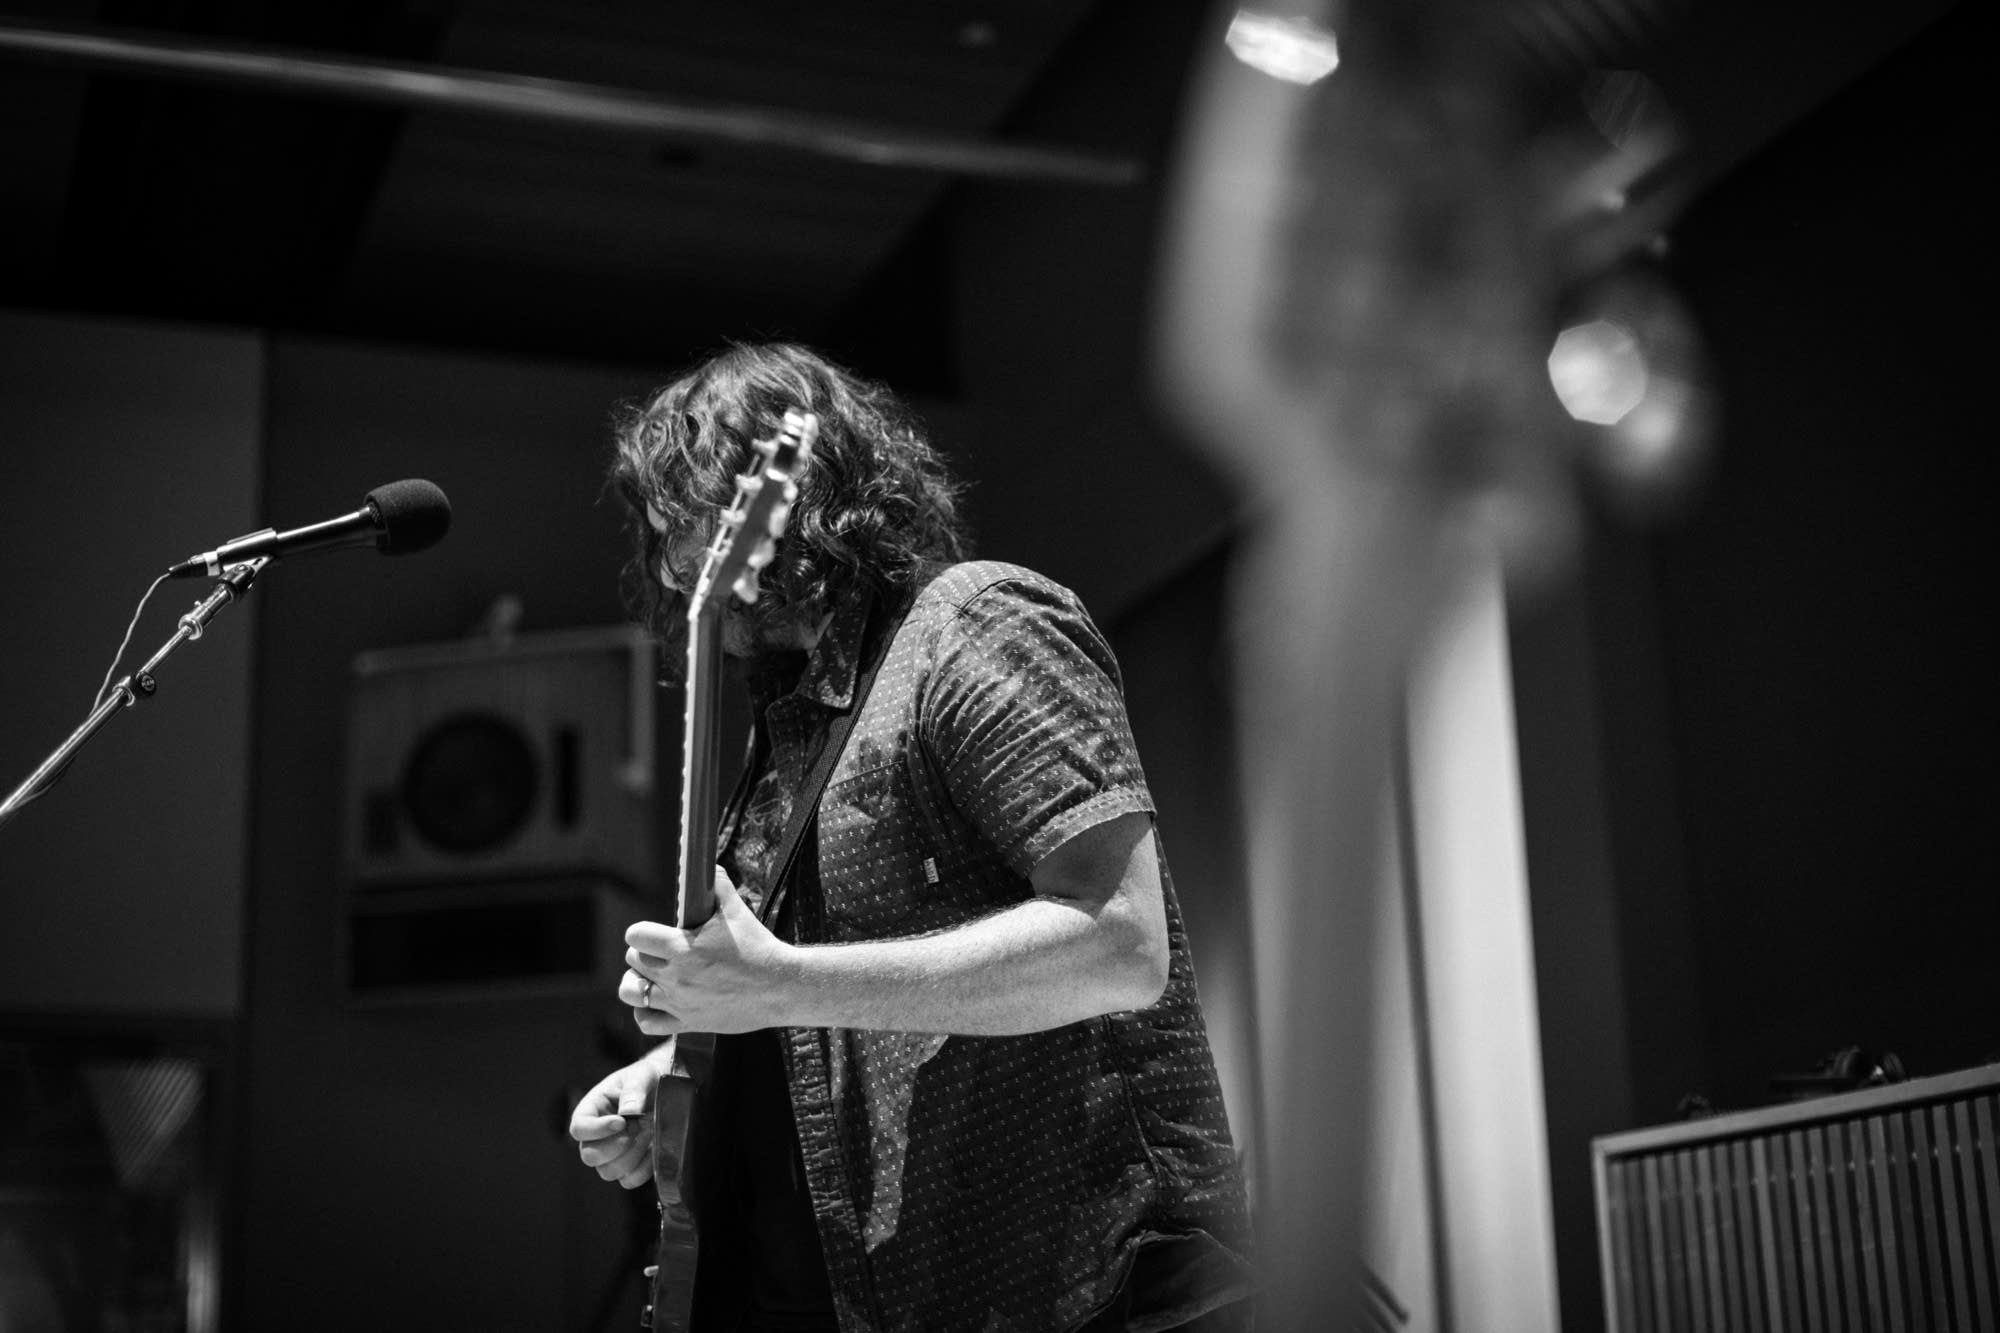 Billy Gordon of J. Roddy Walston & The Business in studio